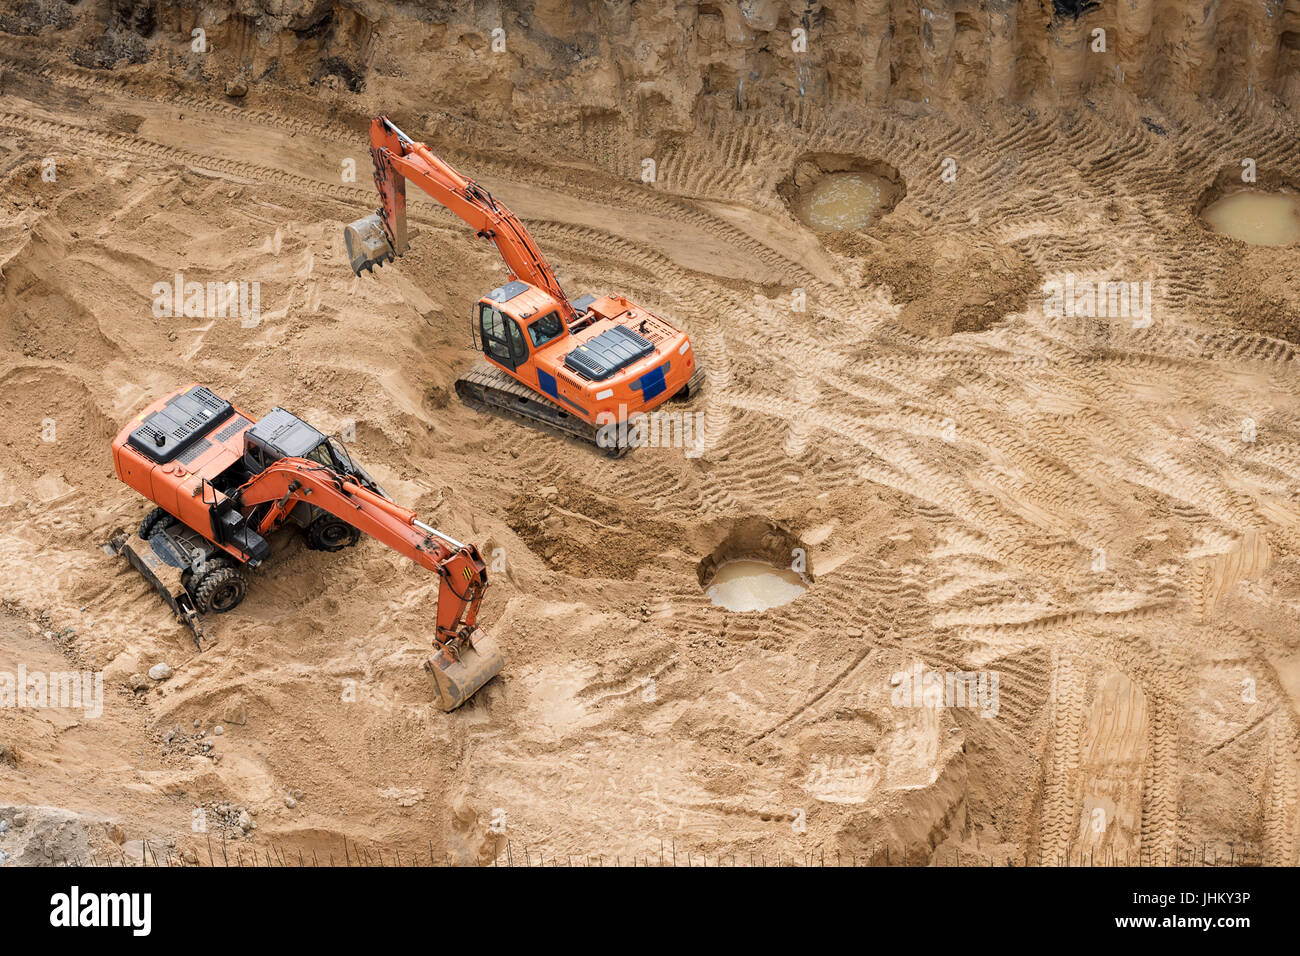 Excavators at sandpit during earthmoving works. Construction of concrete foundation of new building. - Stock Image